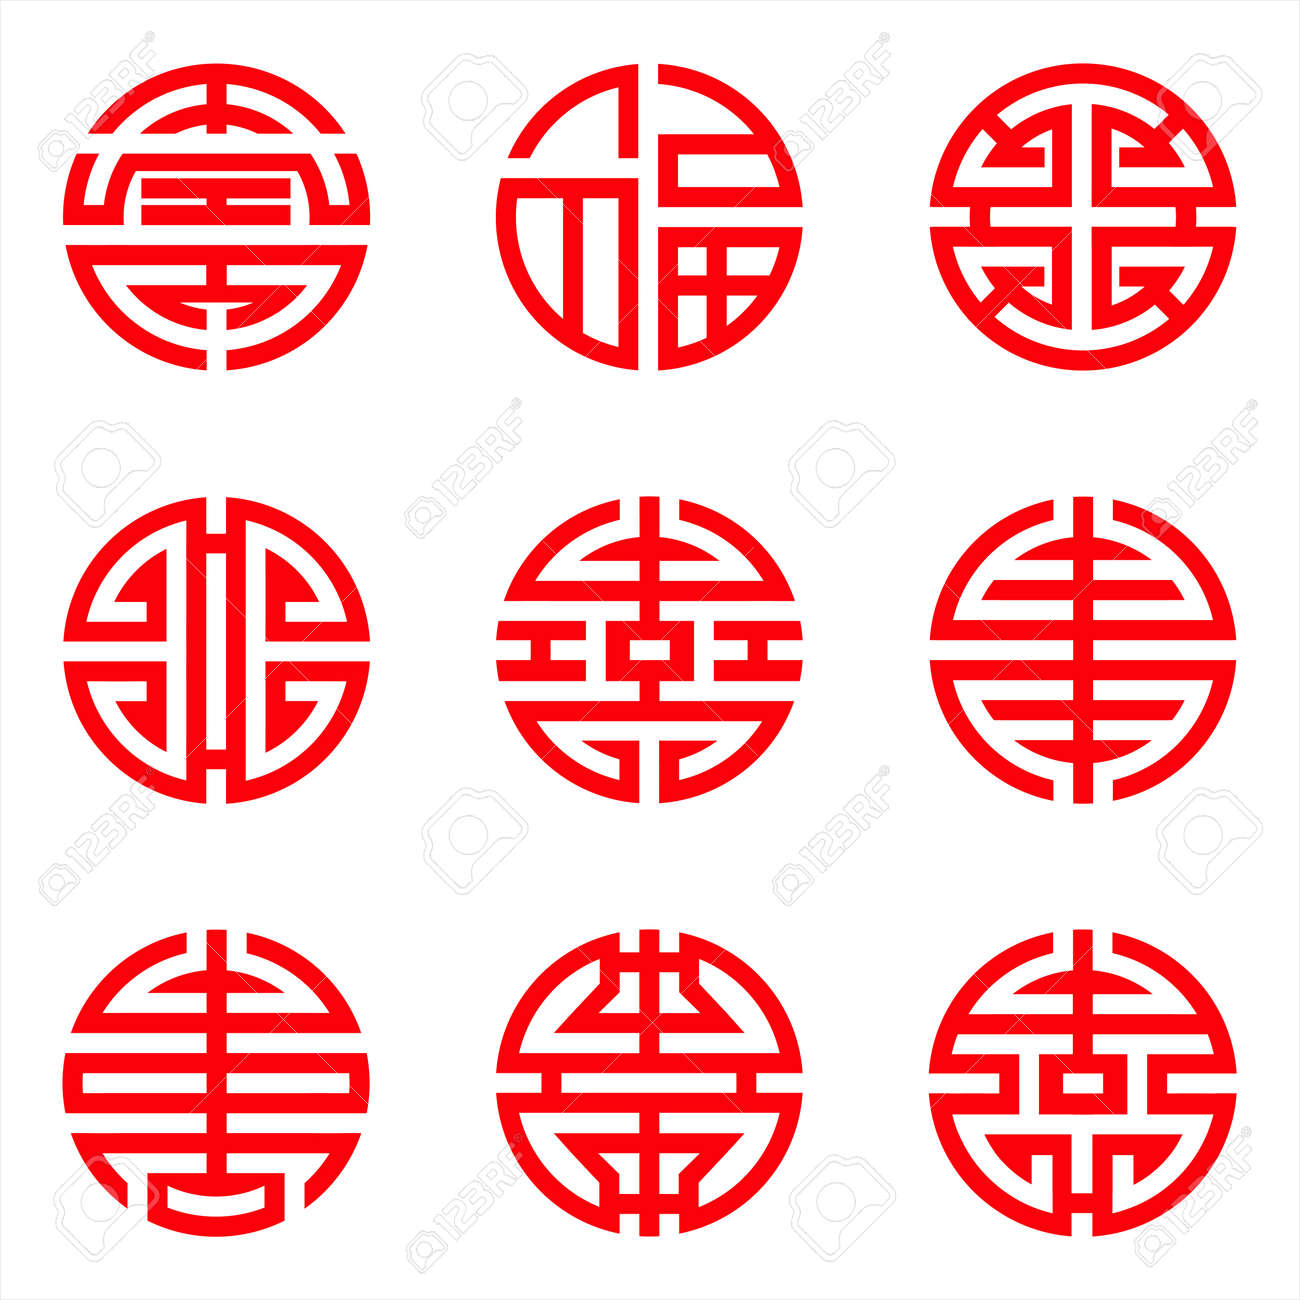 Traditional chinese lucky symbols for blessing people having traditional chinese lucky symbols for blessing people having a long life stock vector 68402404 buycottarizona